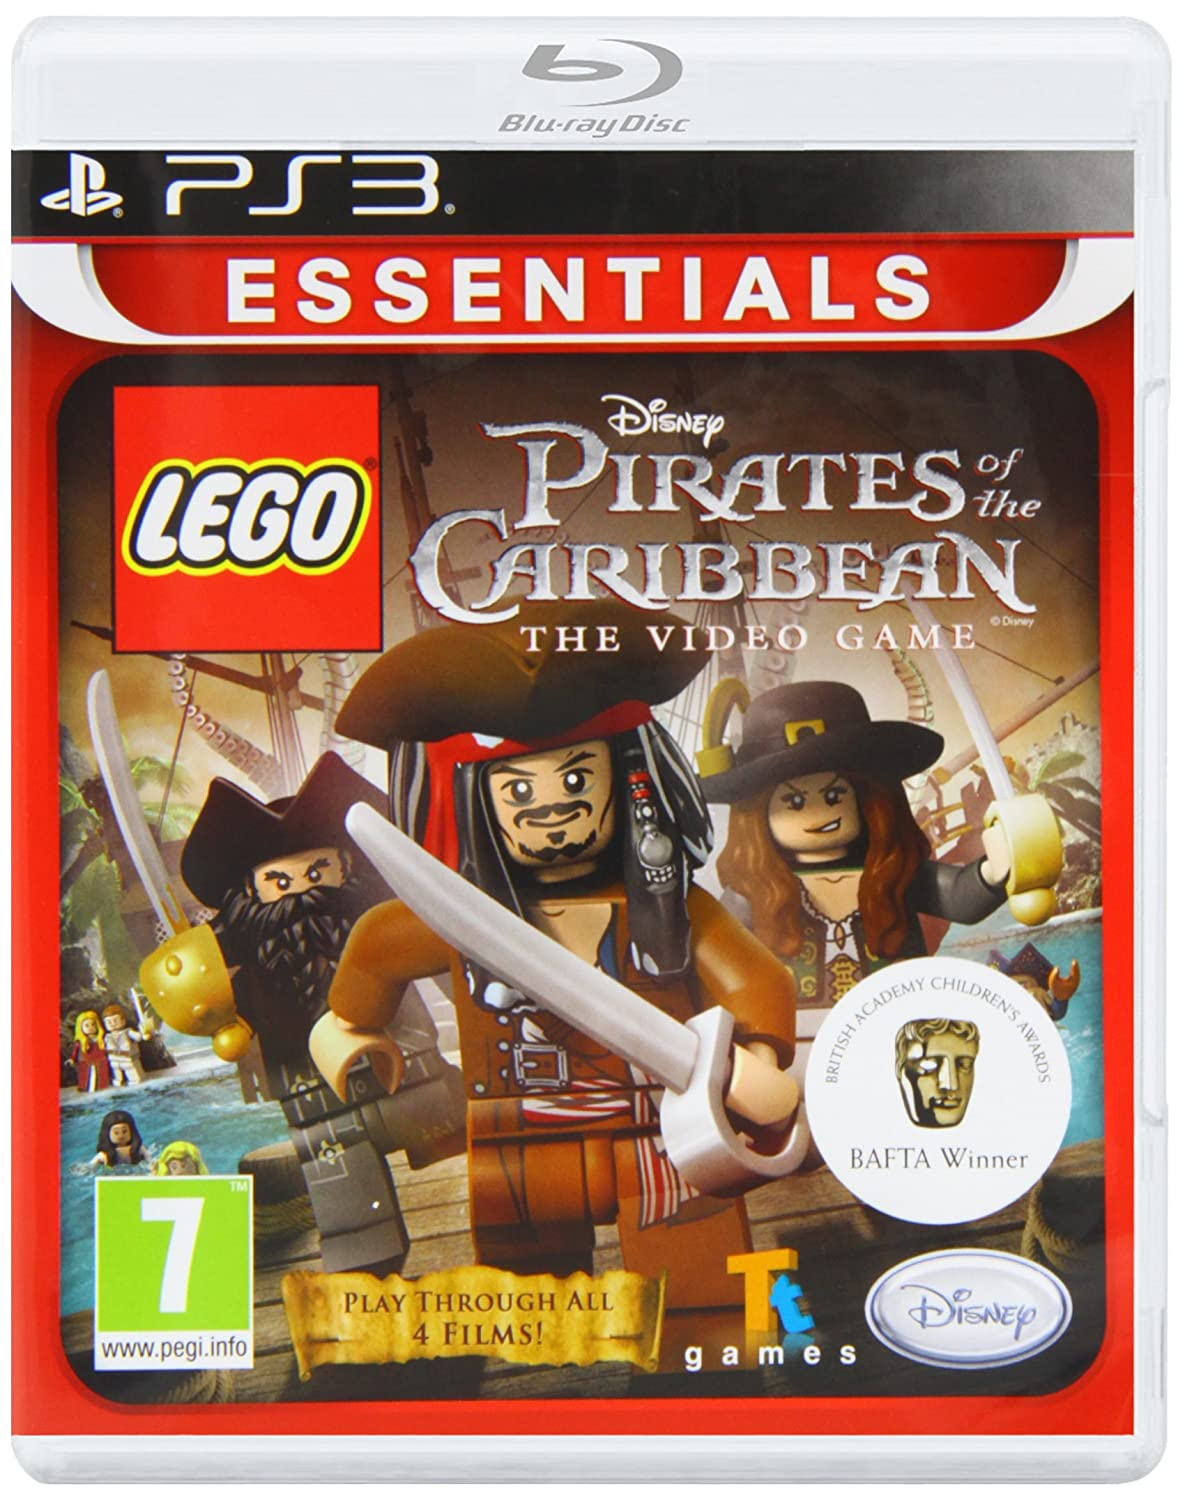 Amazon.com: Lego Pirates of the Caribbean - Playstation 3: Disney Interactive:  Video Games. ... I did not have this problem with any other PS3 Lego games.